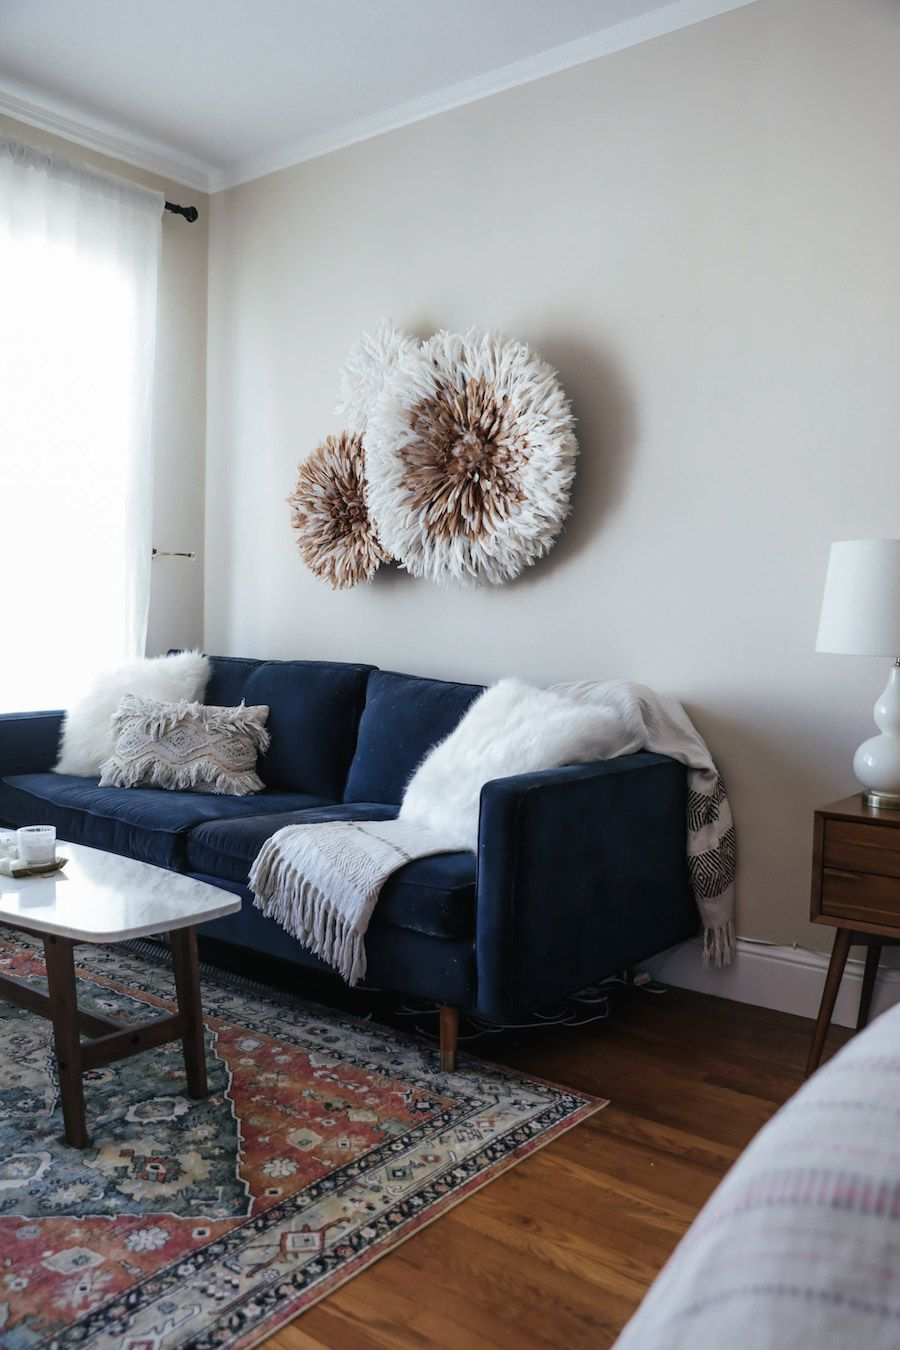 modern minimalist living room with navy blue sofa with throw blankets and throw pillows multicolored area rug white top coffee table hardwood floors Bohemian style wall decorations in round shape